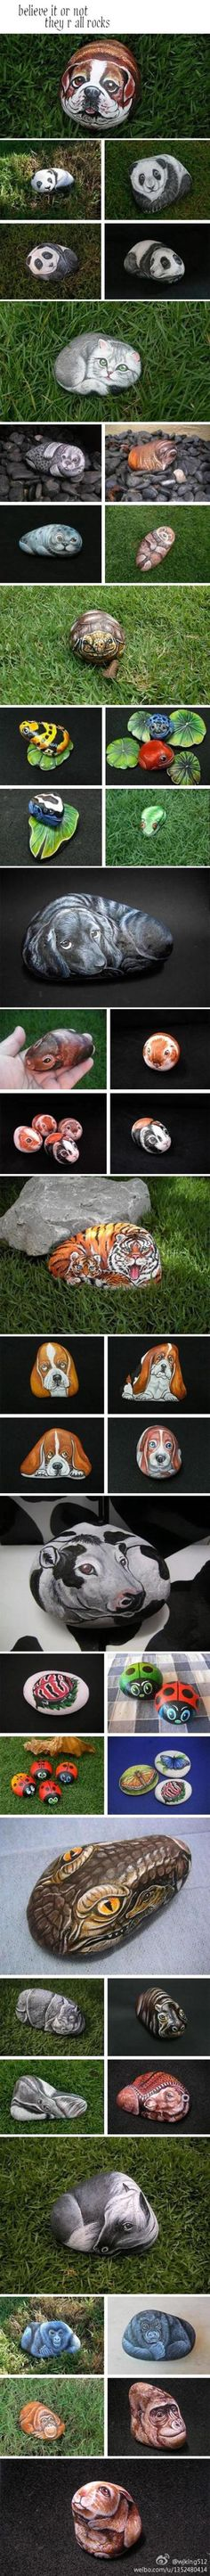 50 Best Rock Painting Ideas, Weapon to Wreck Your Boring Time Rock painting ideas: Roundup of 30 painting ideas for kids and adults.Rock painting ideas: Roundup of 30 painting ideas for kids and adults. Pebble Painting, Tole Painting, Pebble Art, Stone Crafts, Rock Crafts, Pebble Stone, Stone Art, Posca Art, Hand Painted Rocks